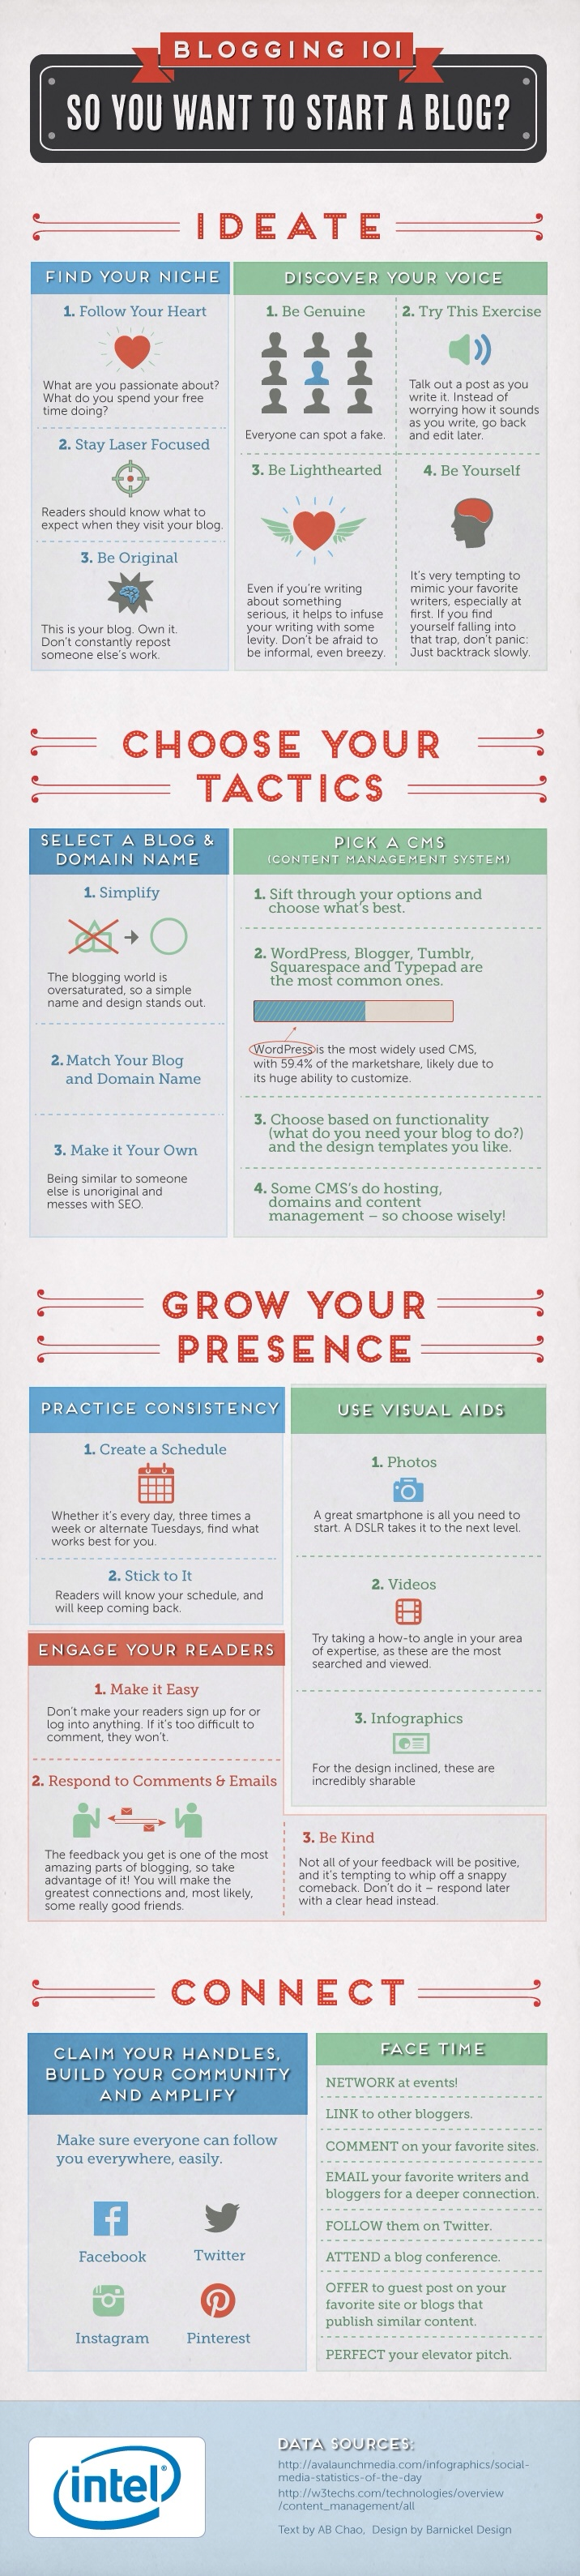 infografik So you want to start a blog - Blogging 101: So you want to start a blog? (Infografik)